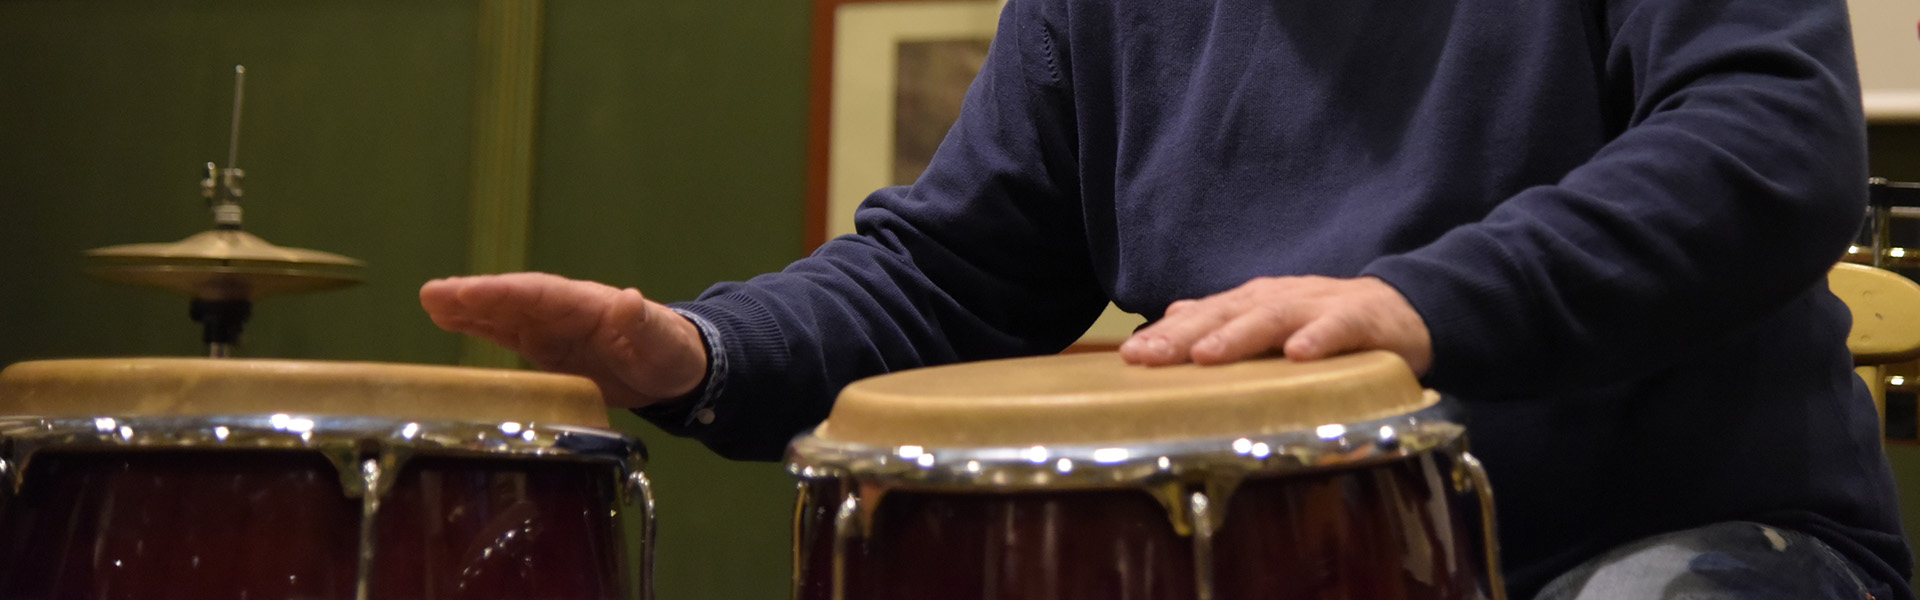 6 Famous Percussionists